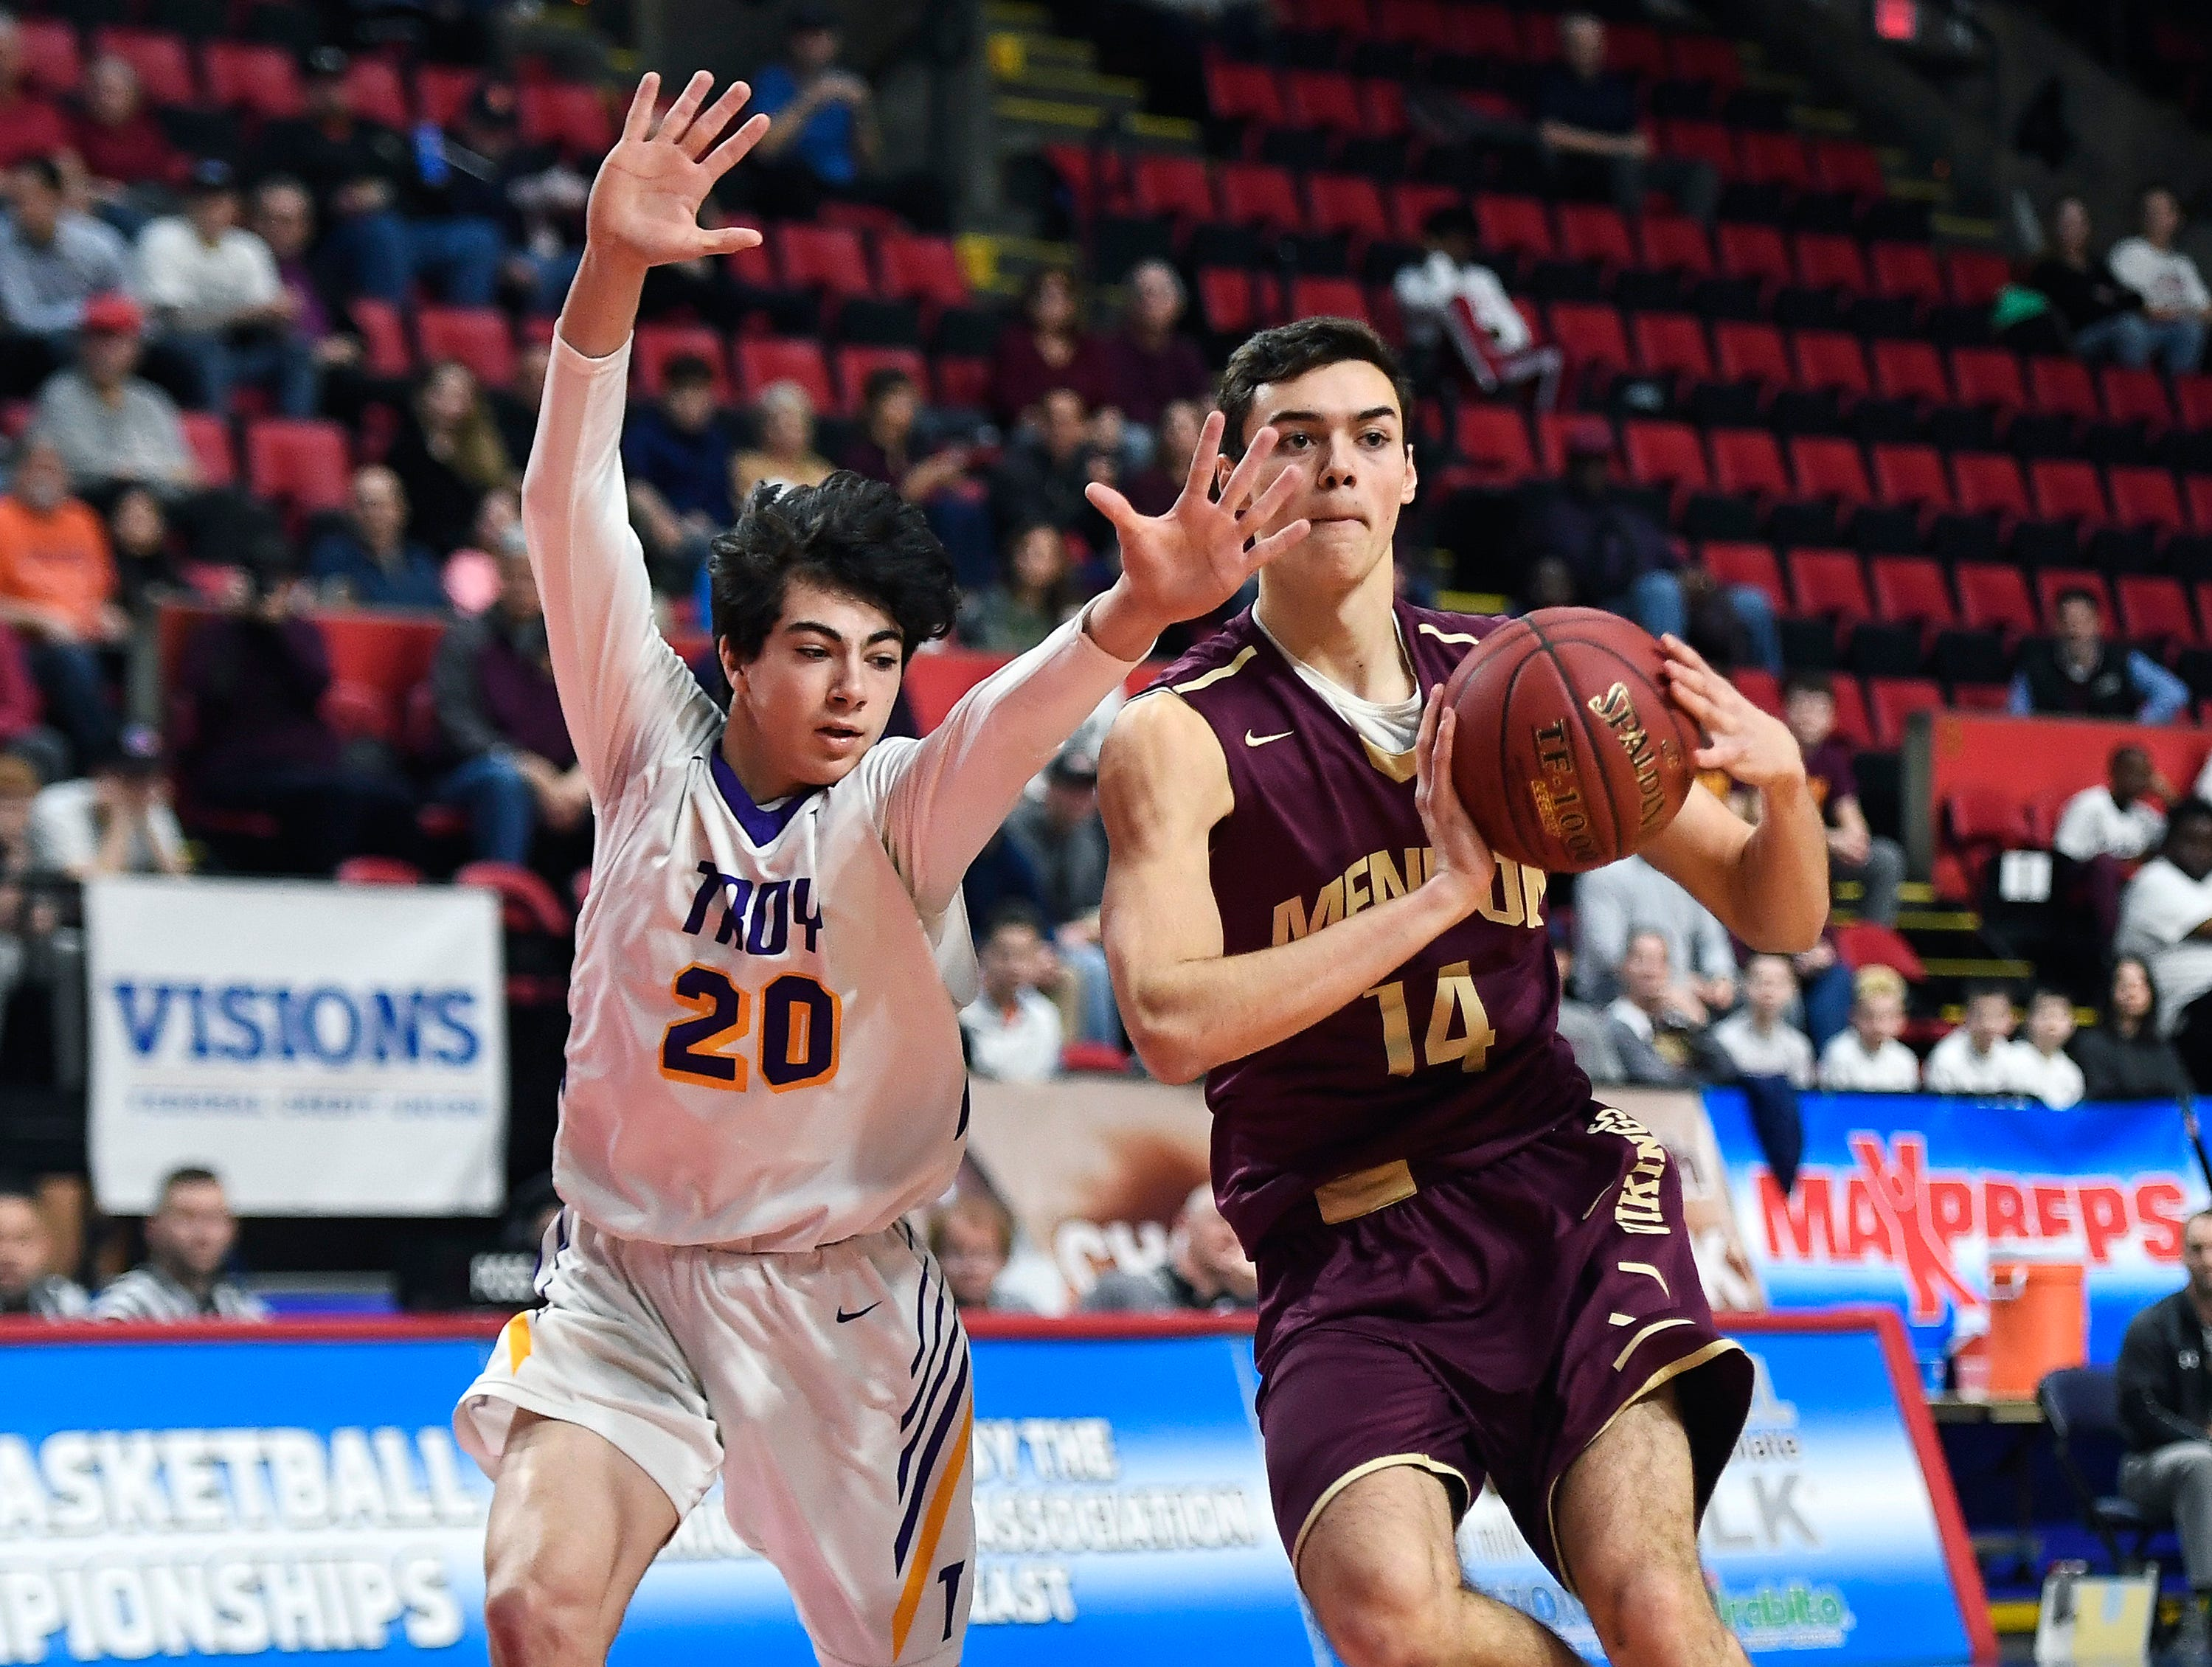 Pittsford Mendon's Dan Cook, right, passes the ball while defended by Troy's Alex Wolfe during a Class A semifinal at the NYSPHSAA Boys Basketball Championships.